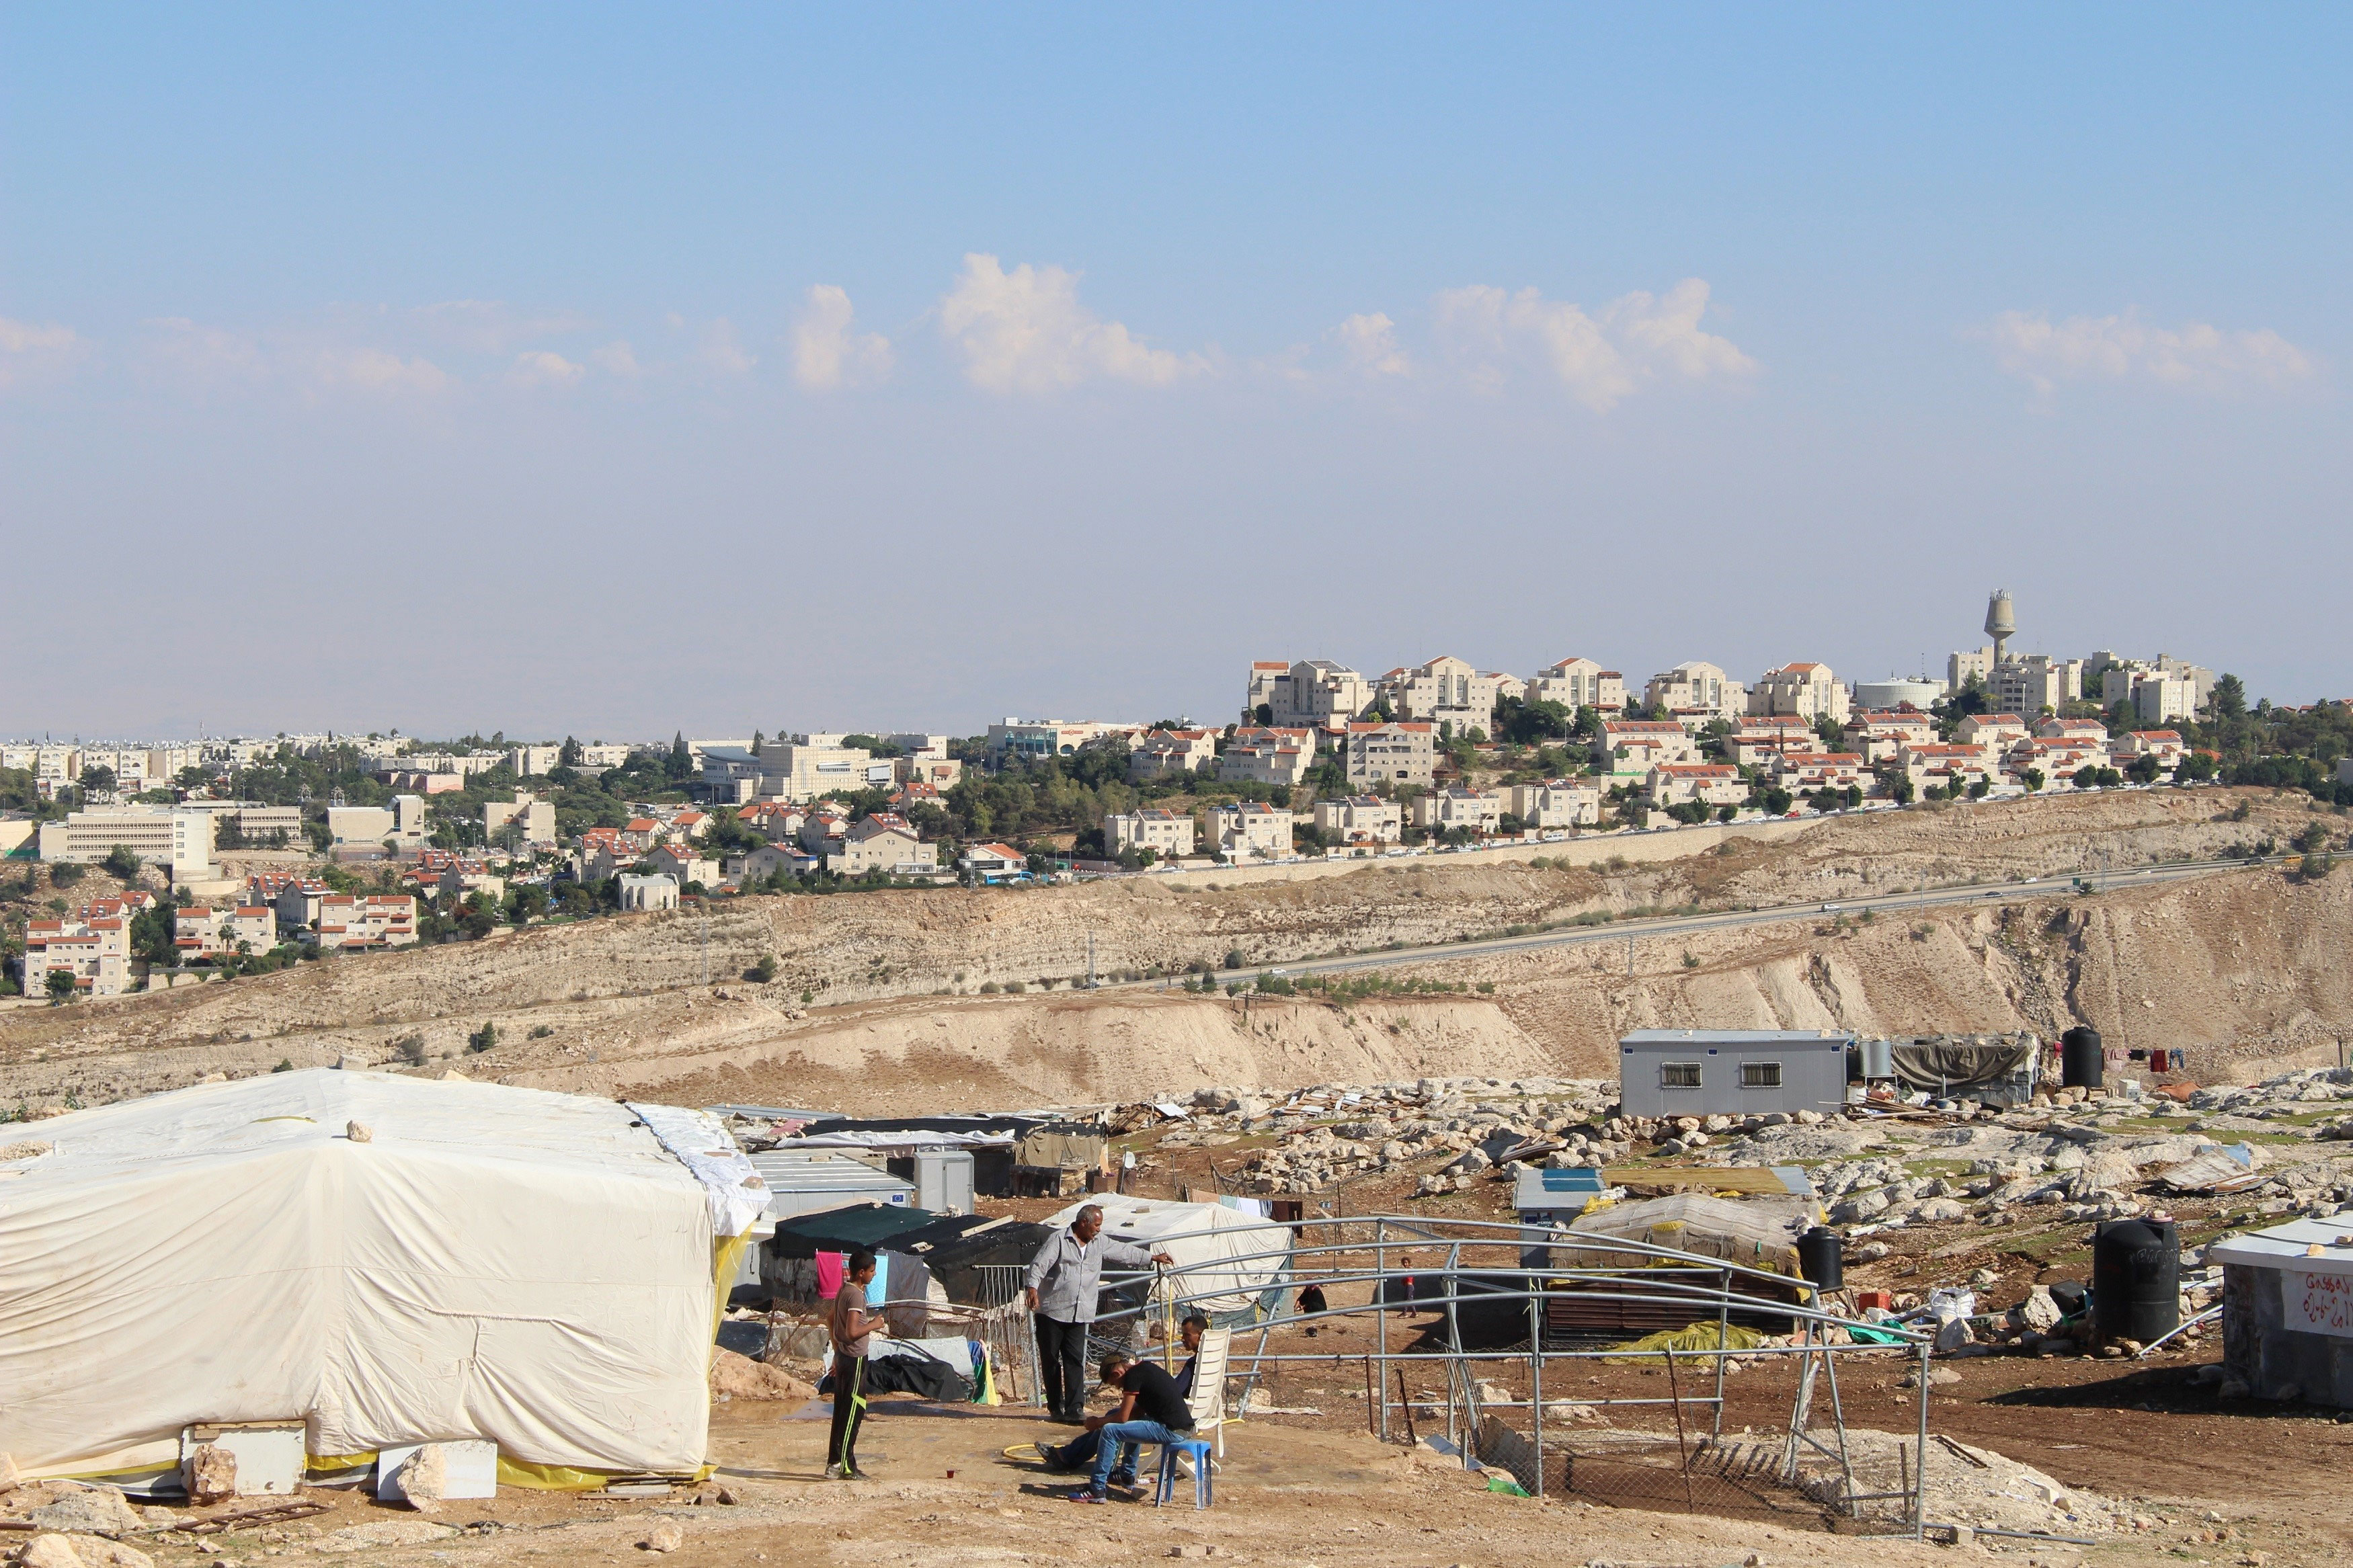 Palestinian tents with settlement behind